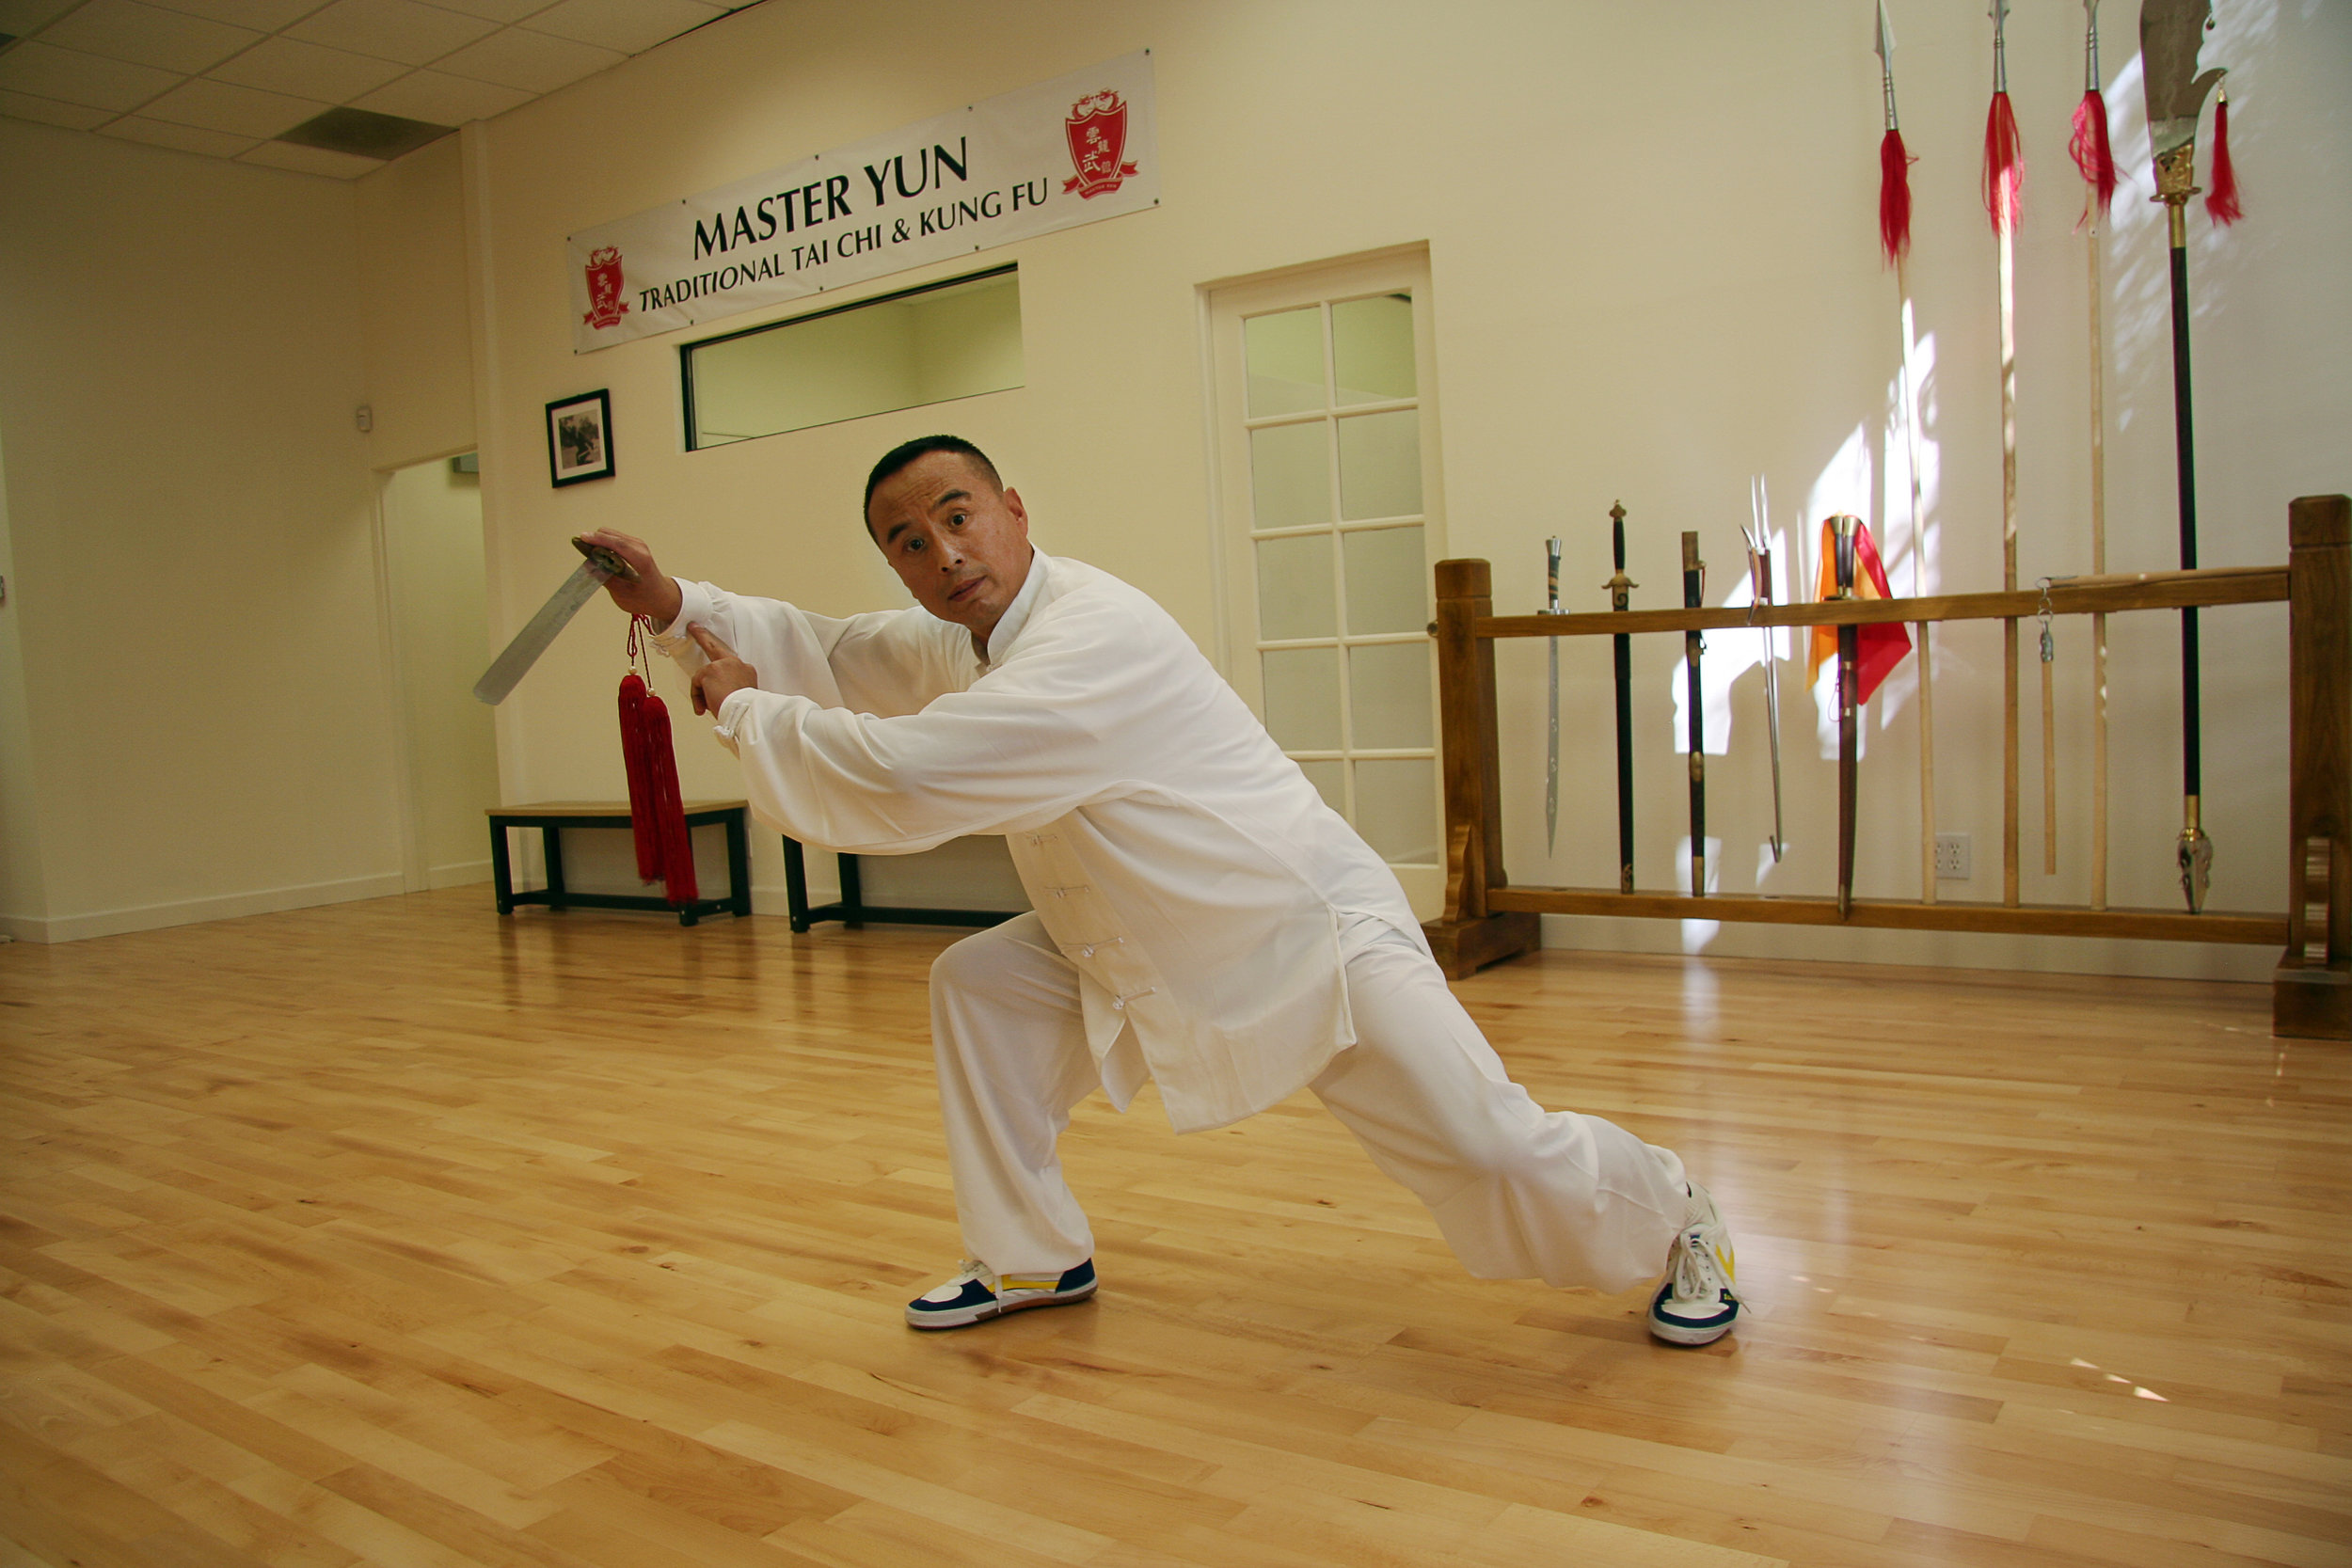 Master Yun poses with the Qing Ping Sword in our new studio in Santa Barbara.